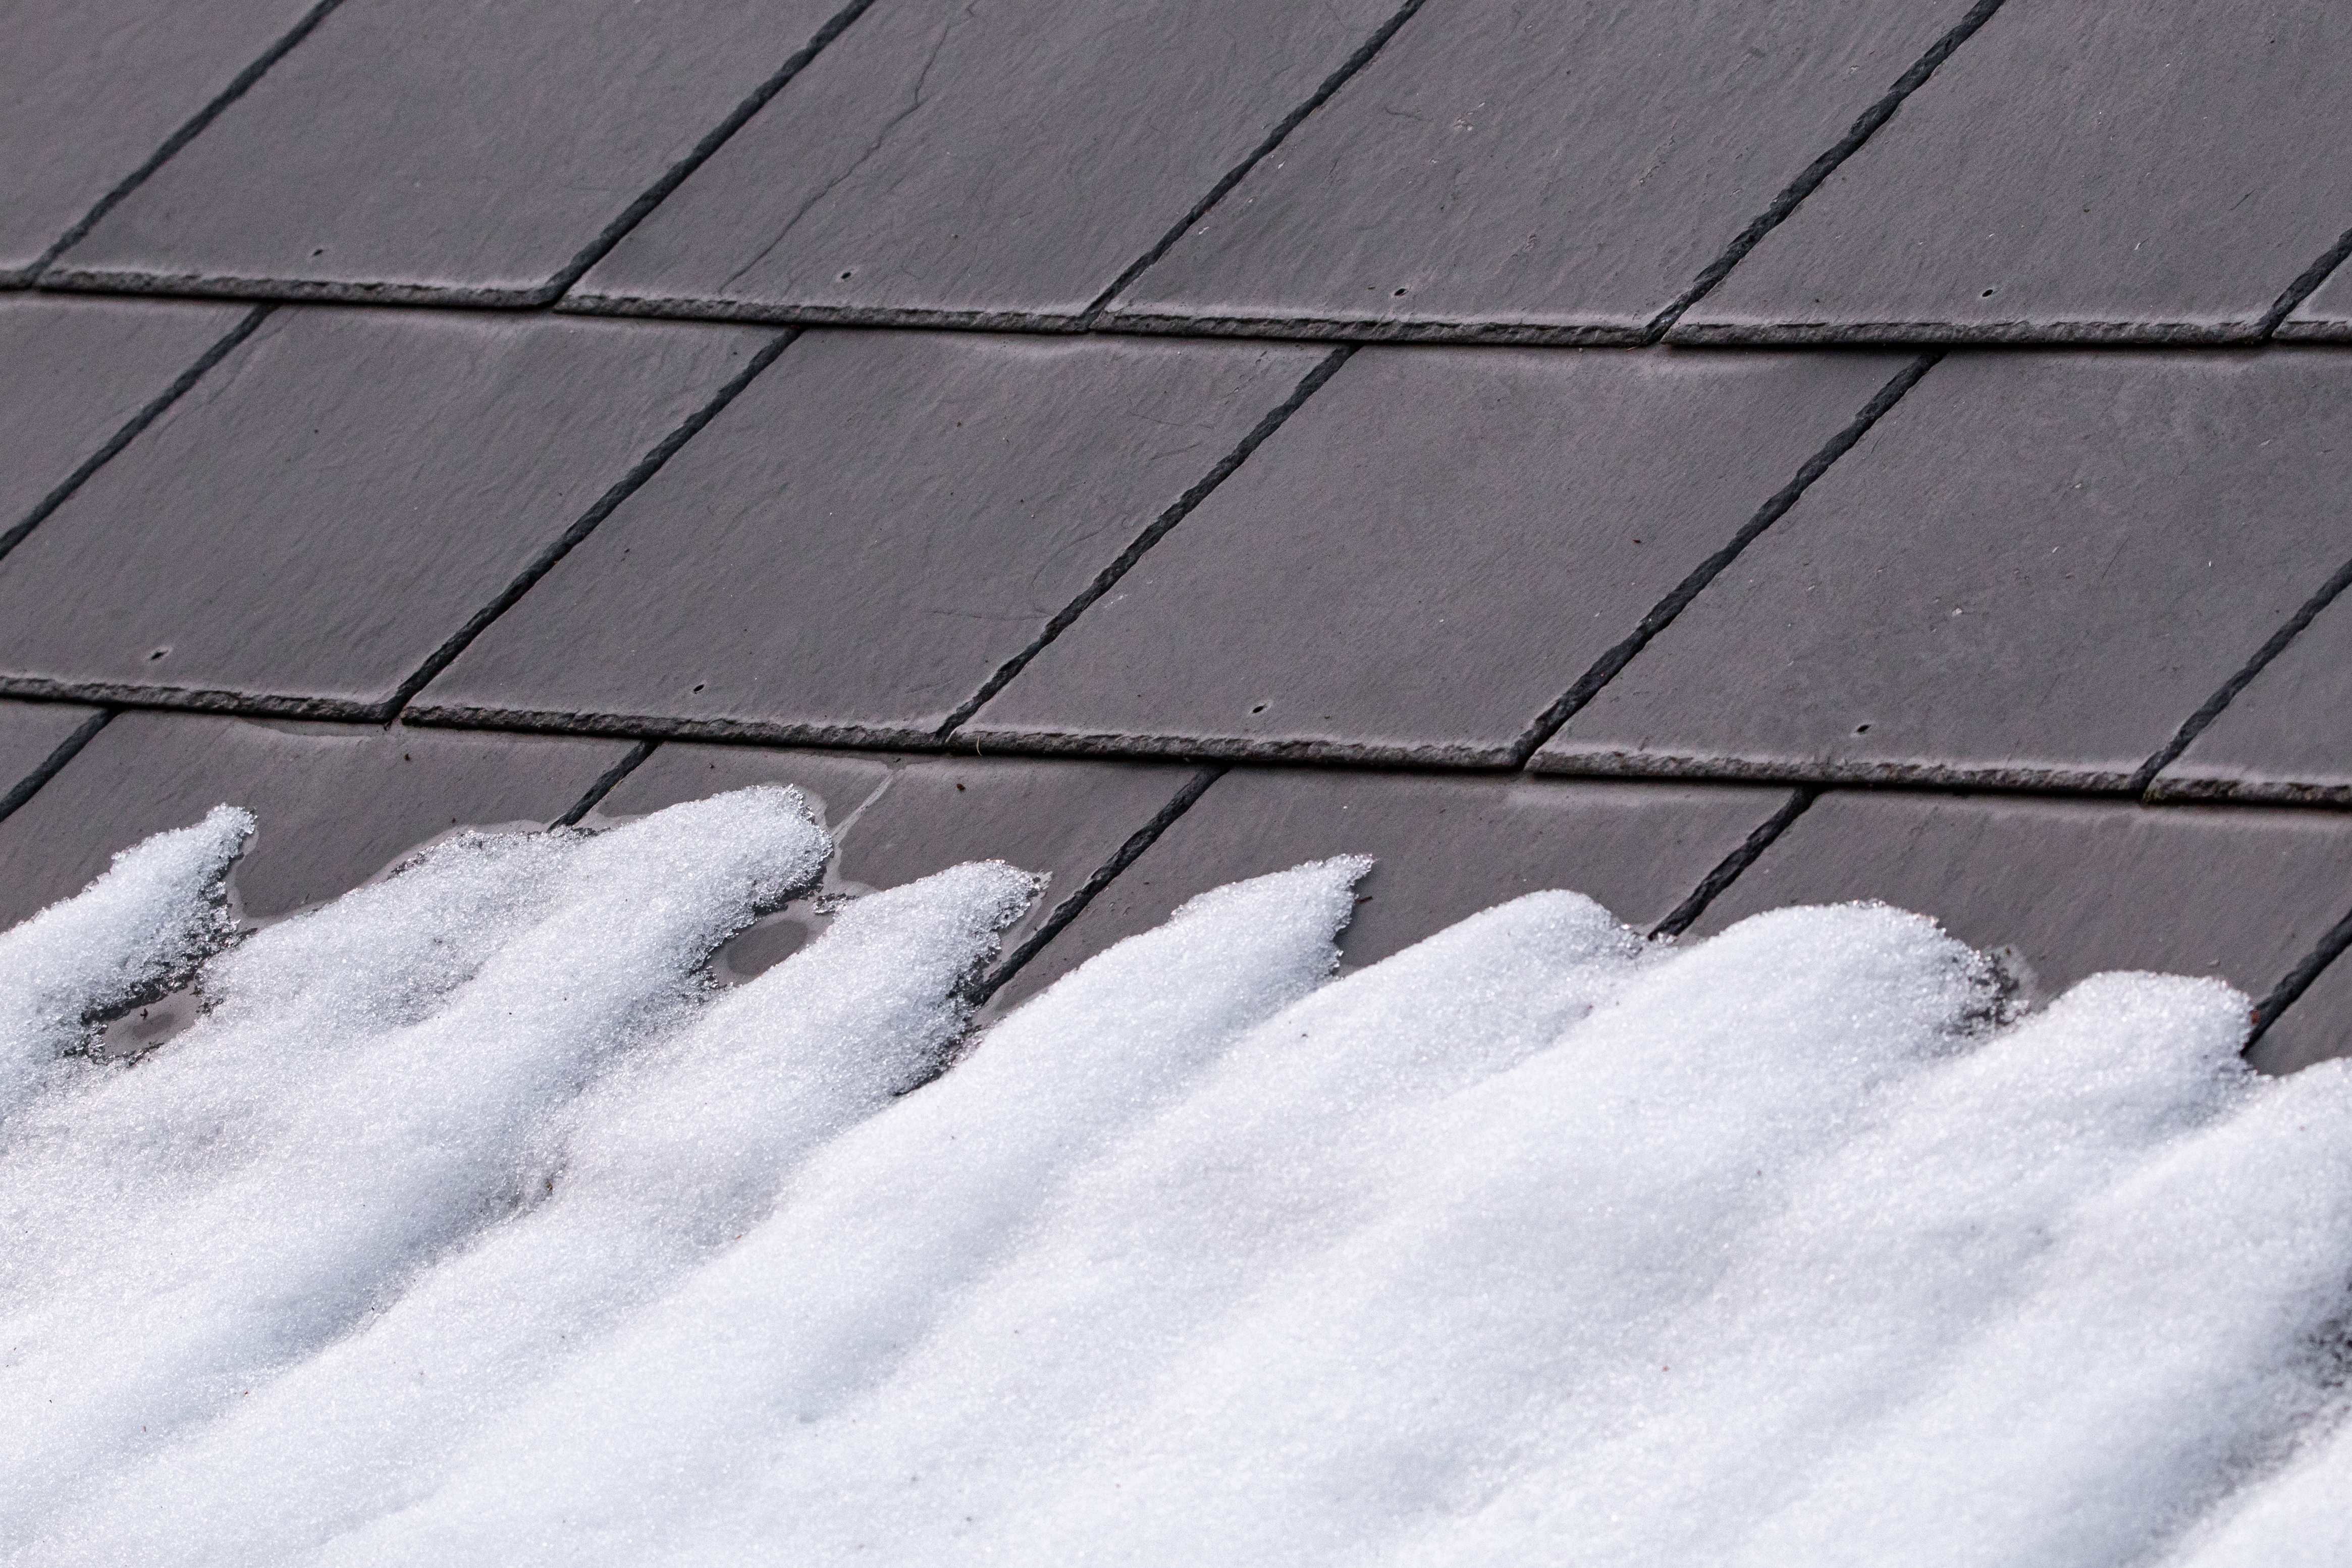 A Pattern of Grey Slates on a Roof with Melting Snow